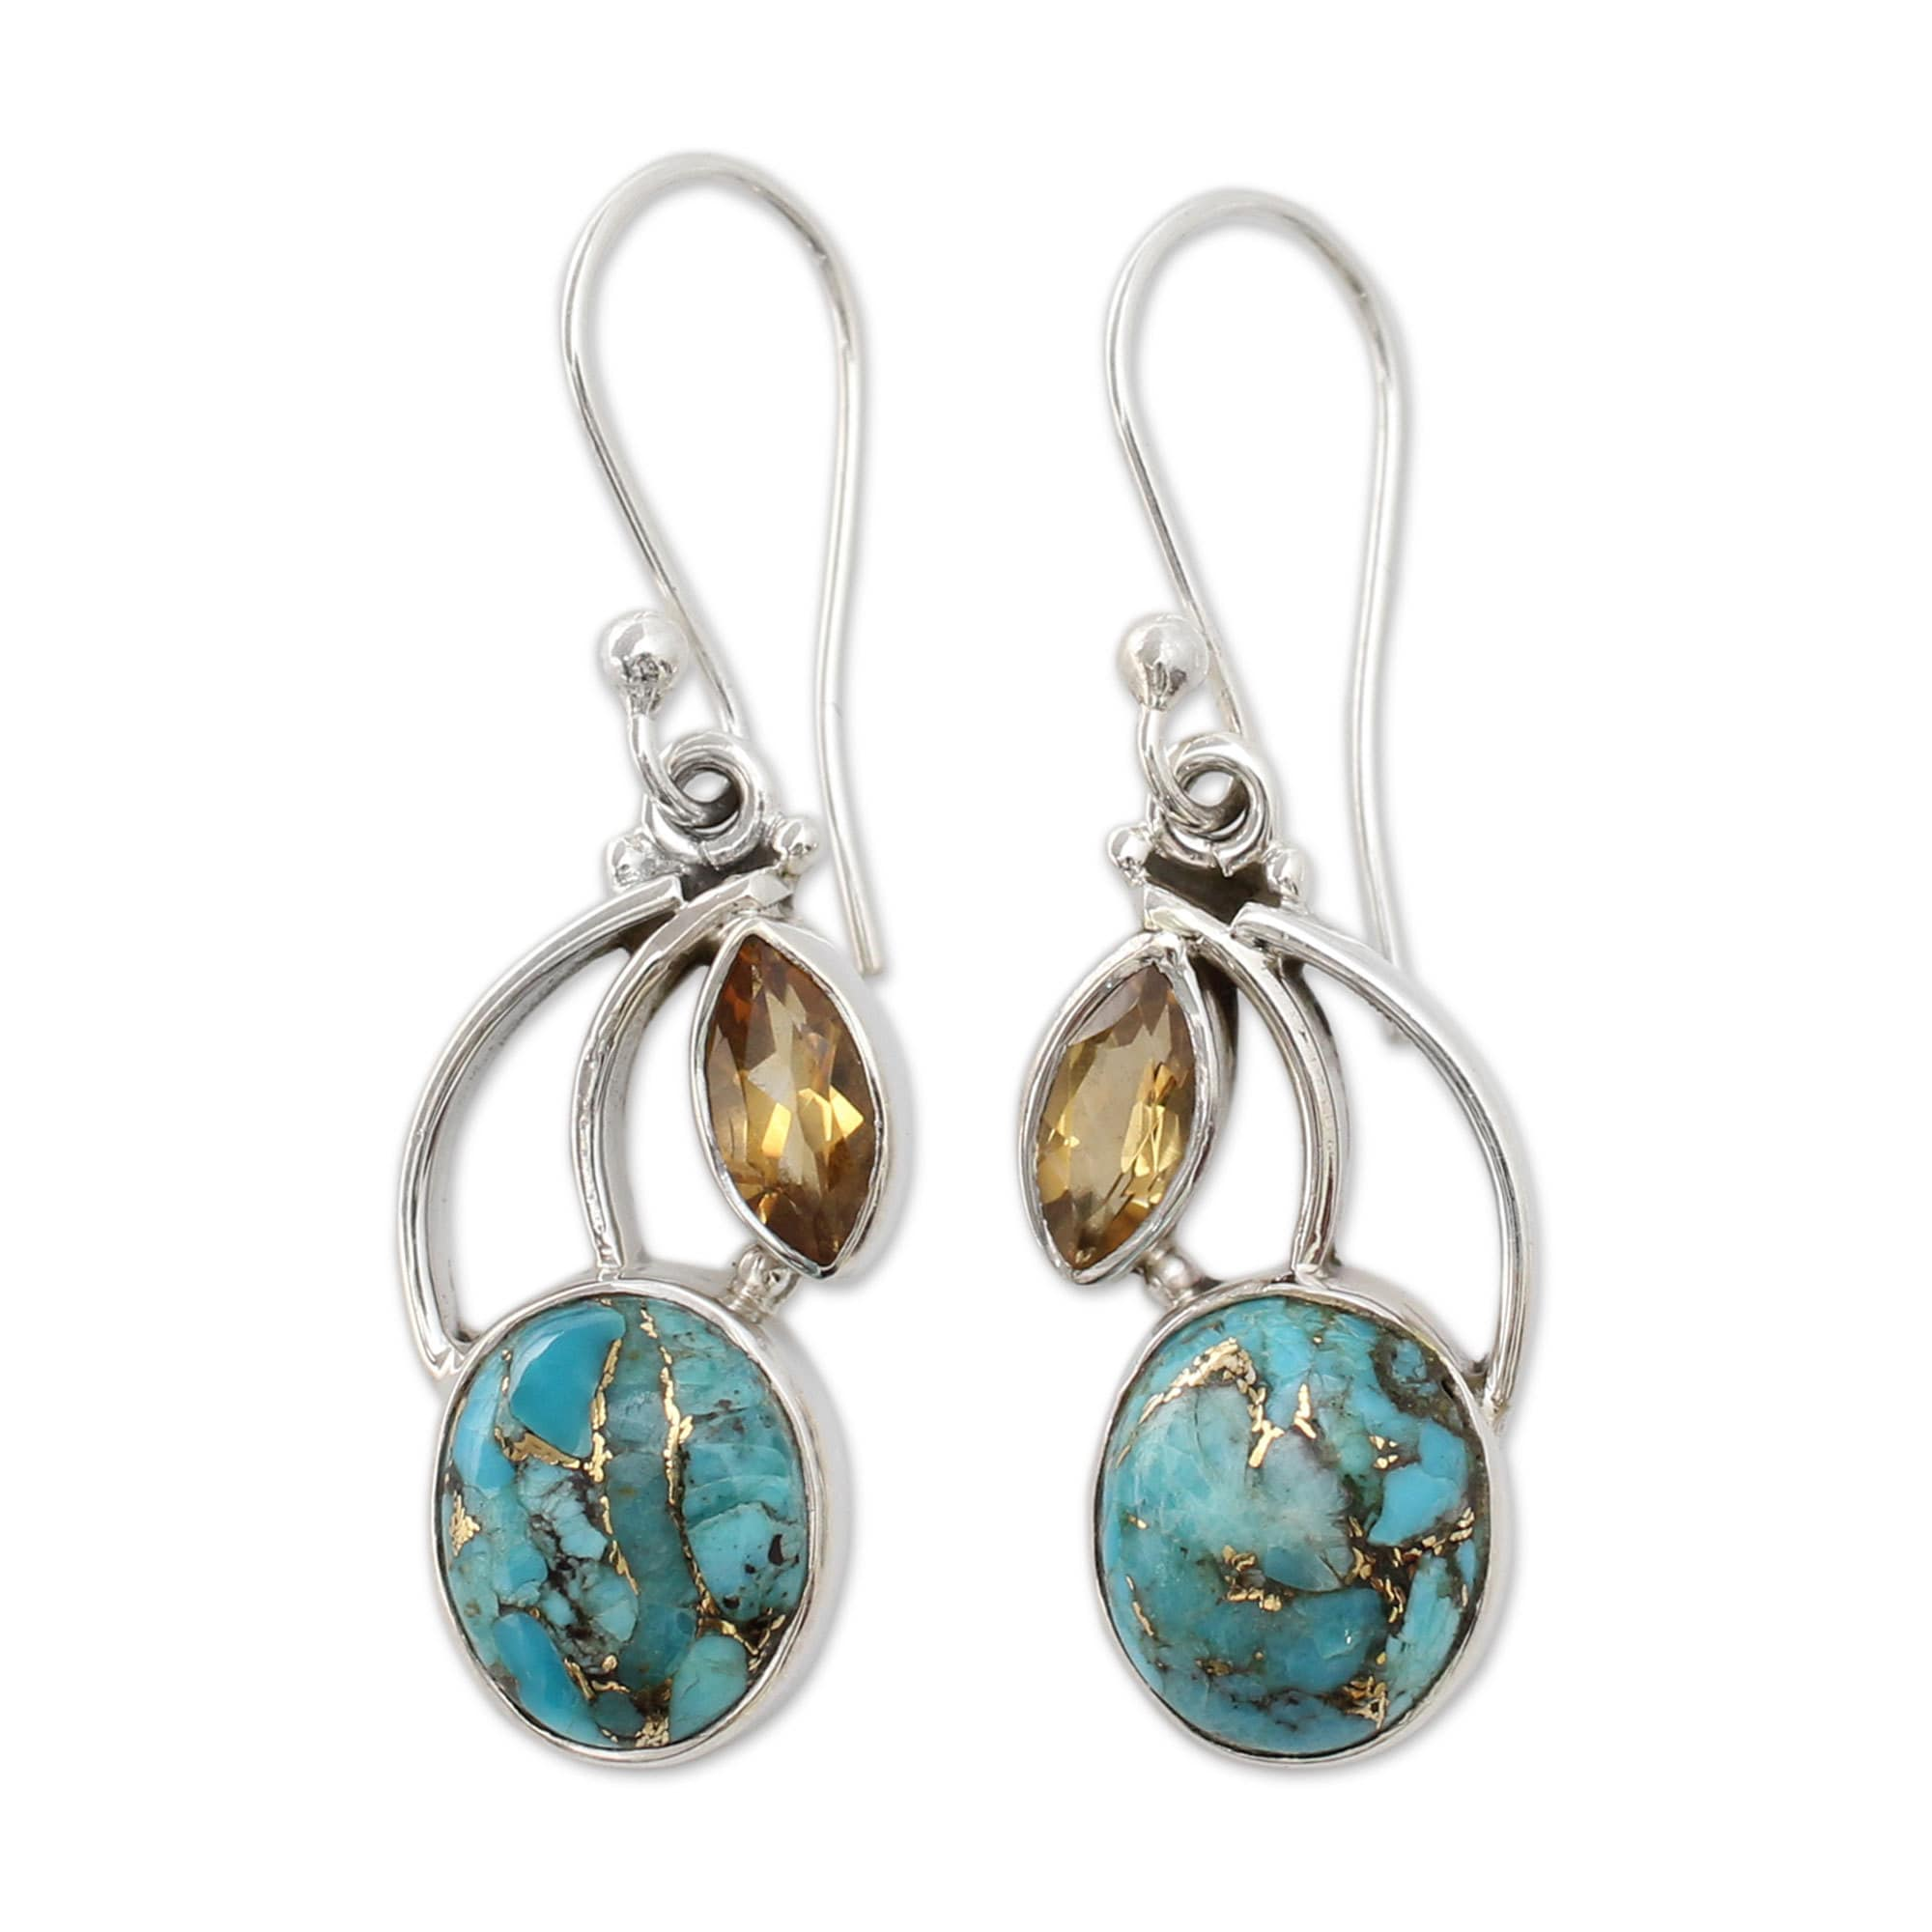 teardrop earrings stone silver jewelry genuine drop amazon sterling roped turquoise com dp